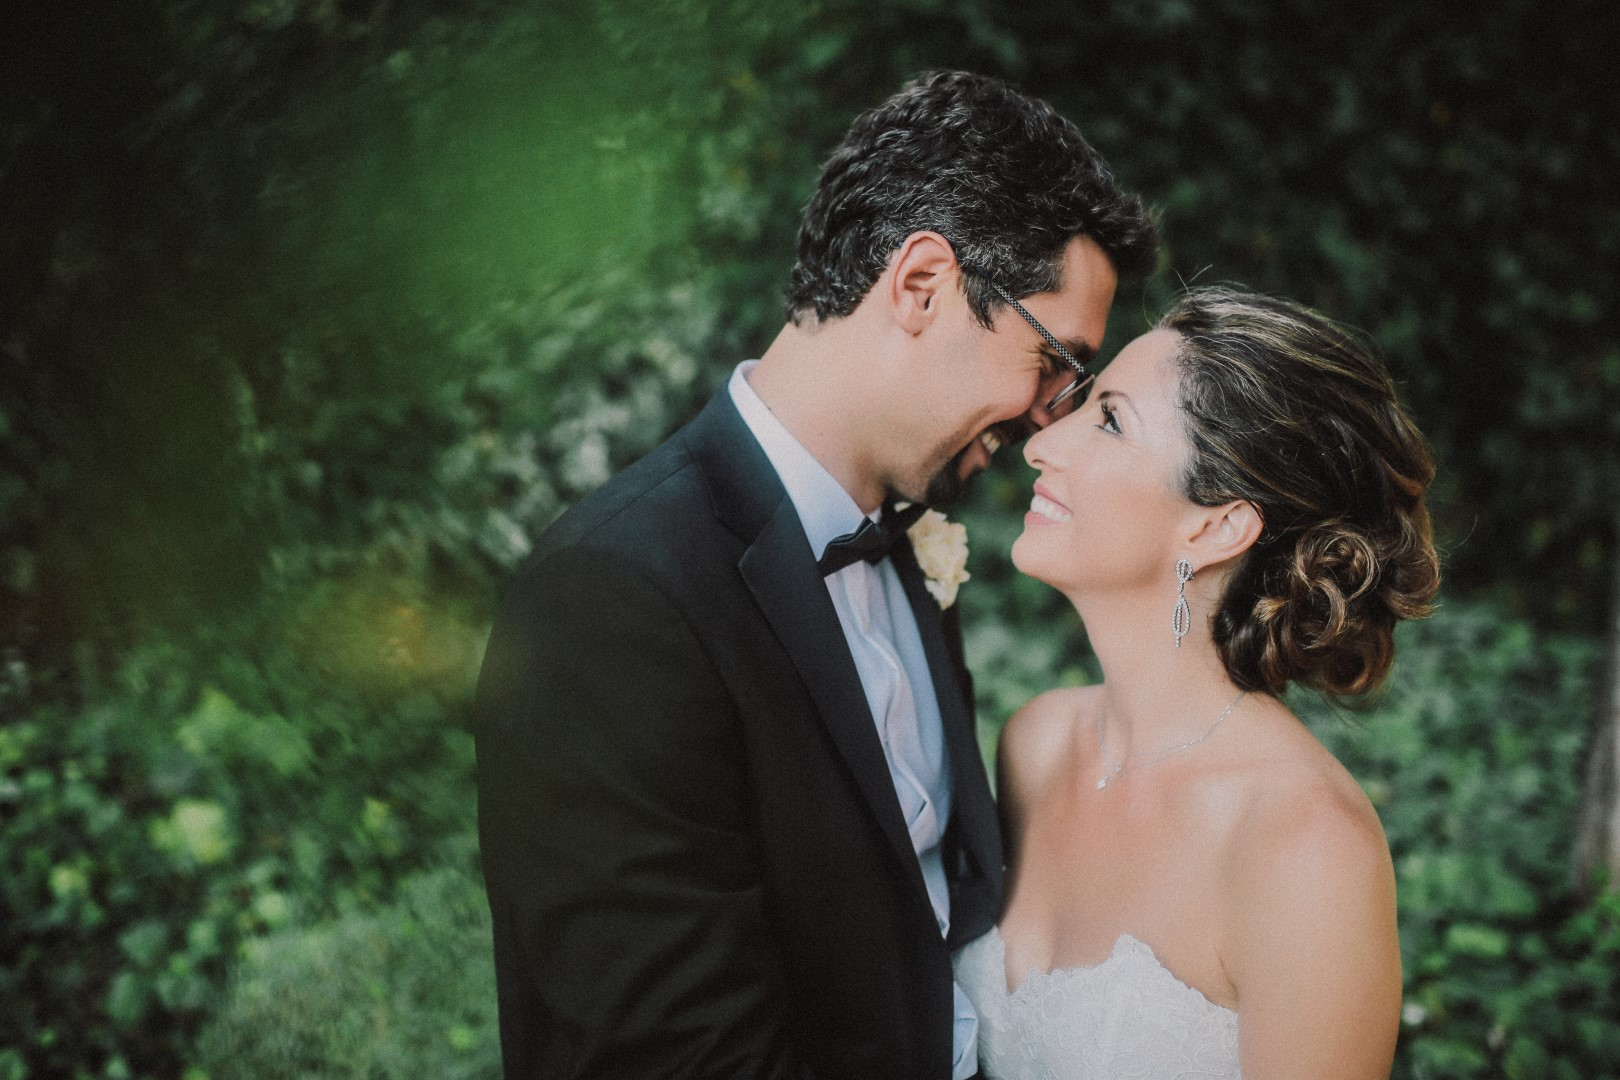 This is a photo from the photosession of the happy couple. They are in a garden. They are looking at each other. She has a beautiful updo.